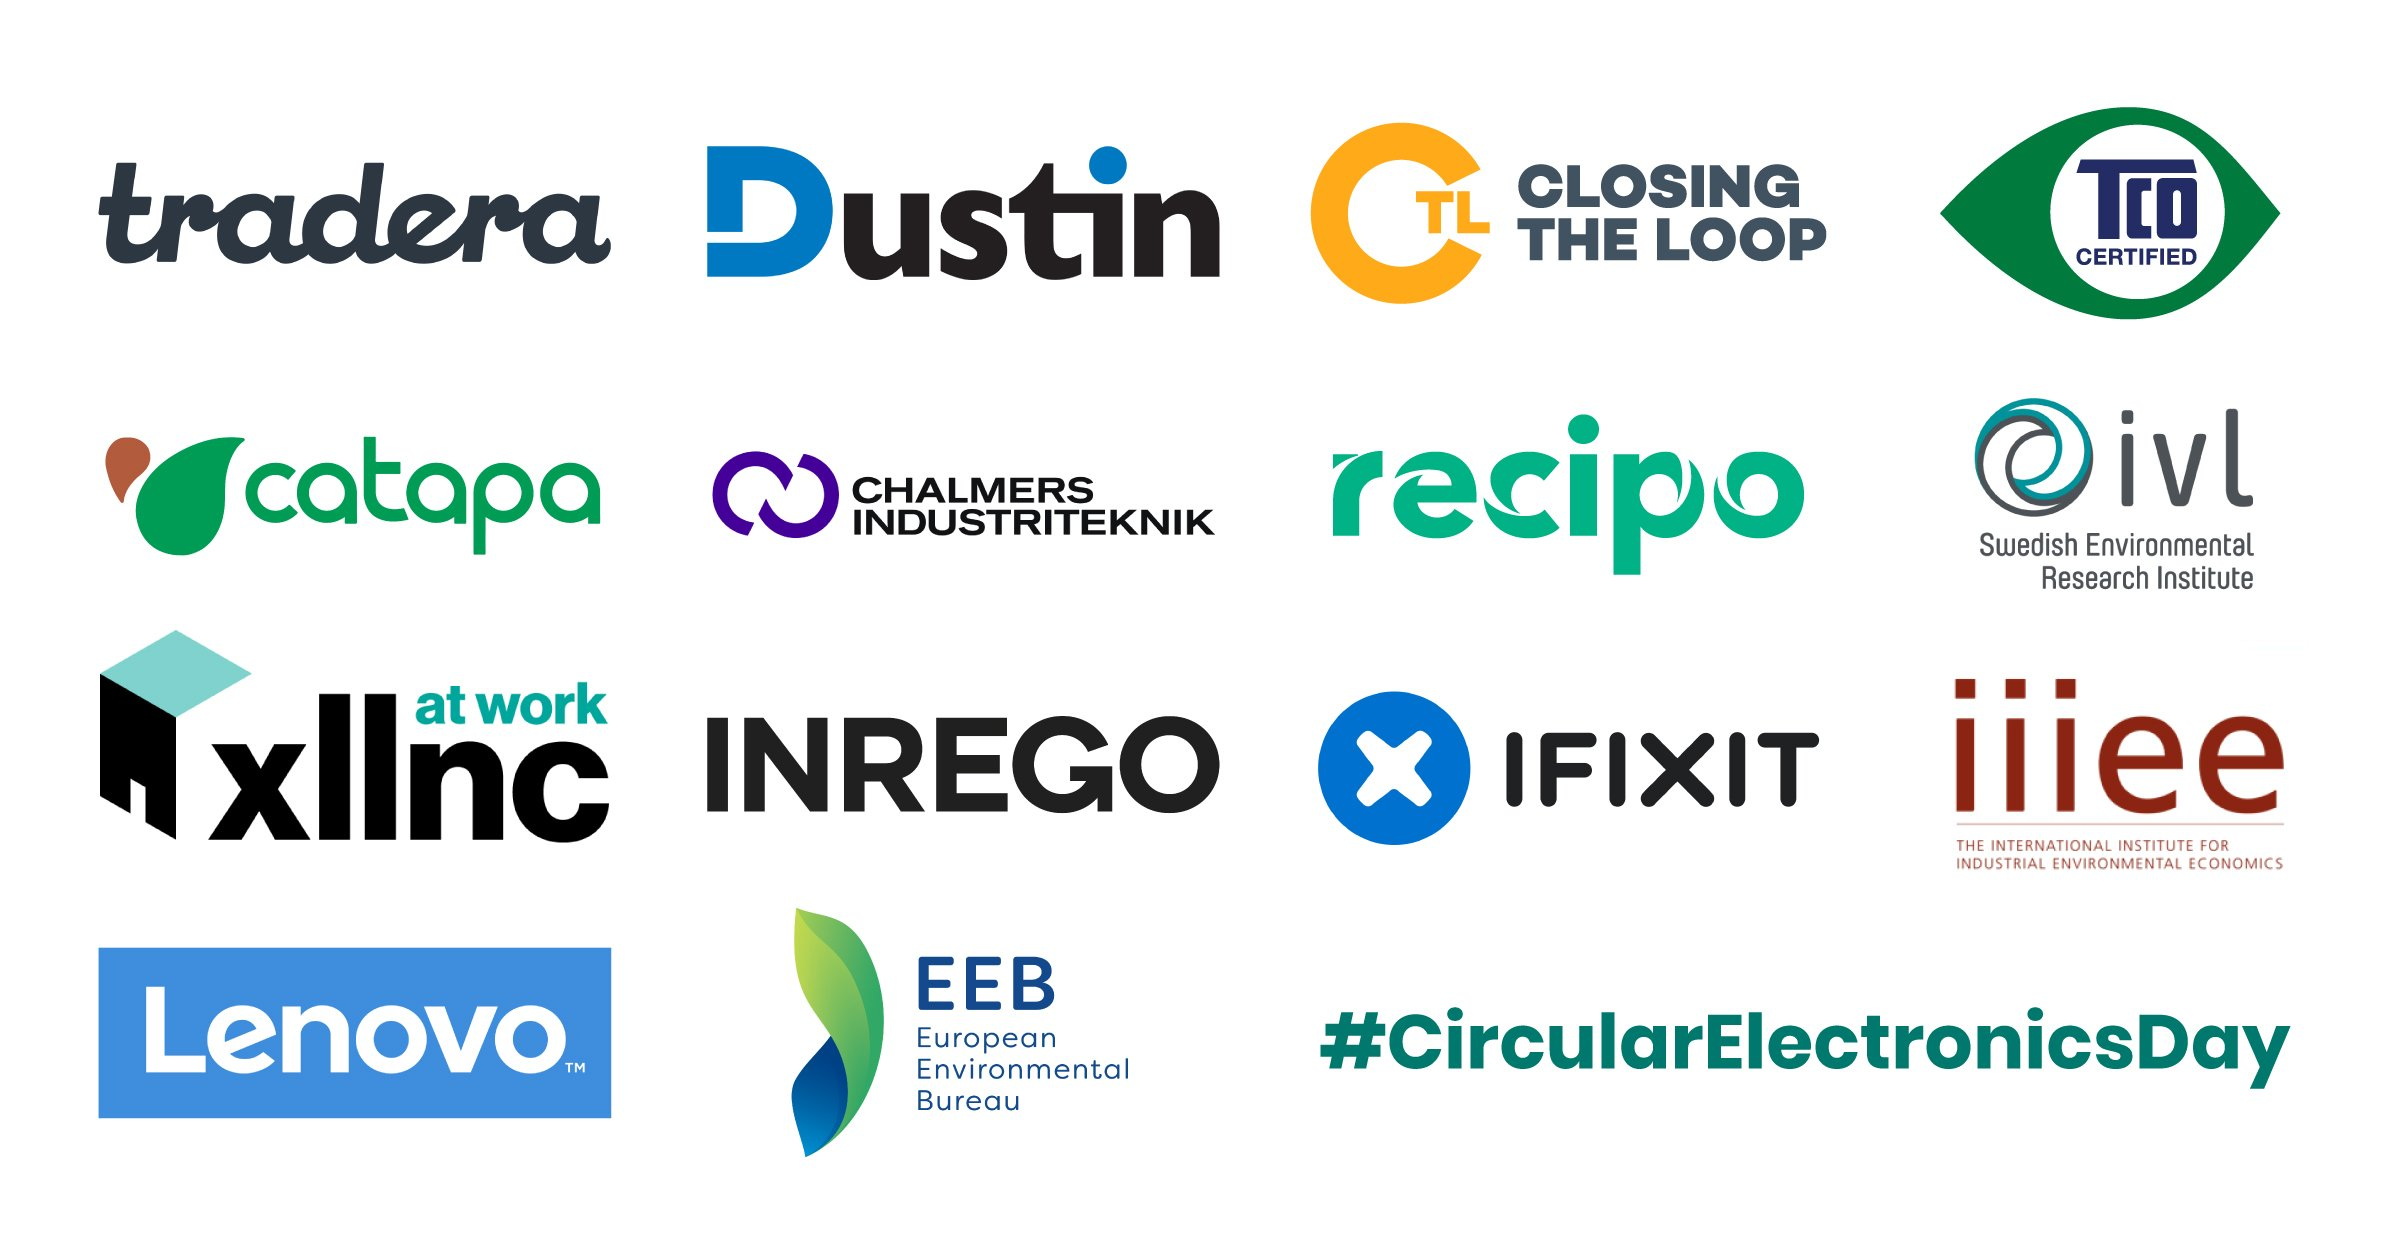 Organizations call for sustainable action on Circular Electronics Day